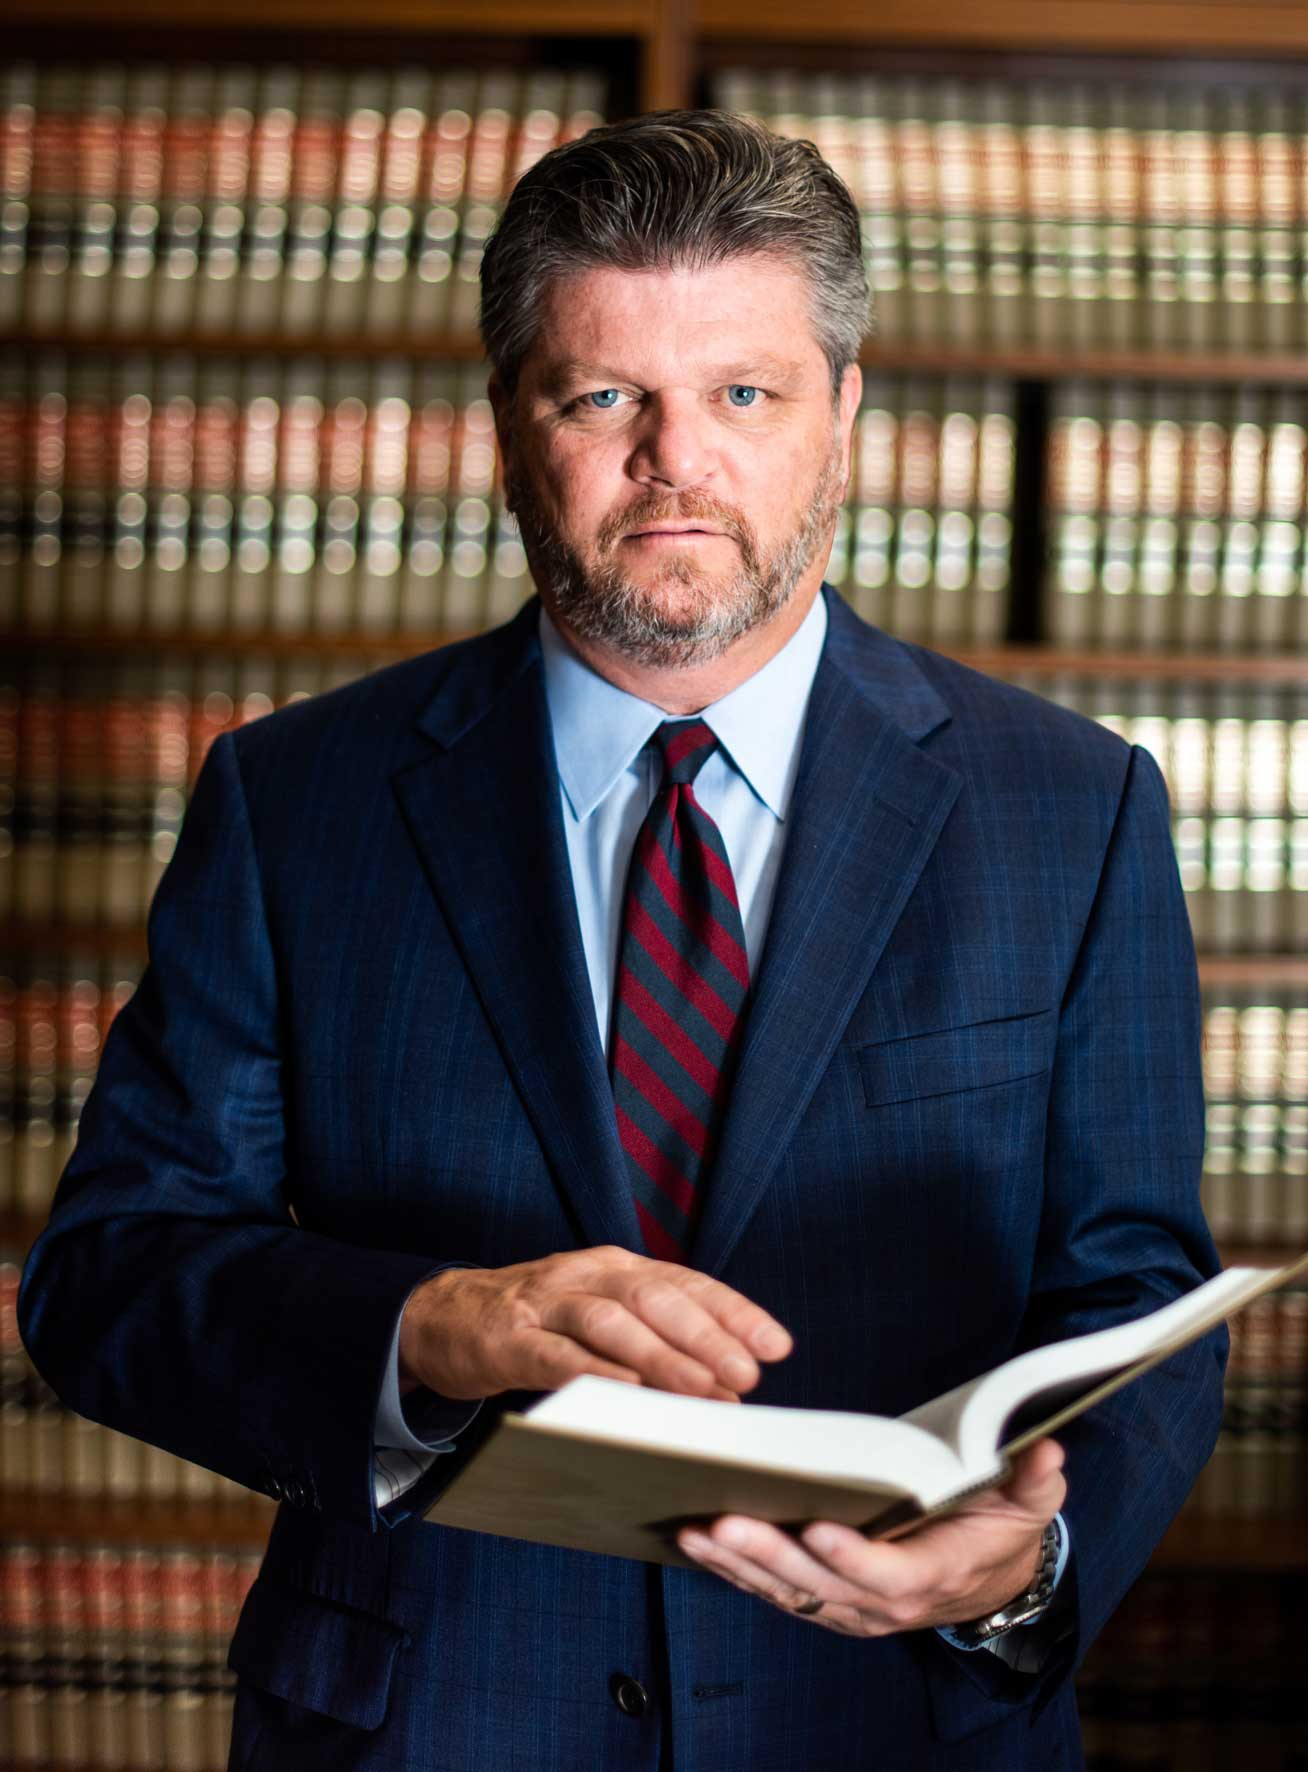 John Harralson holding a book standing in front of shelves of law books